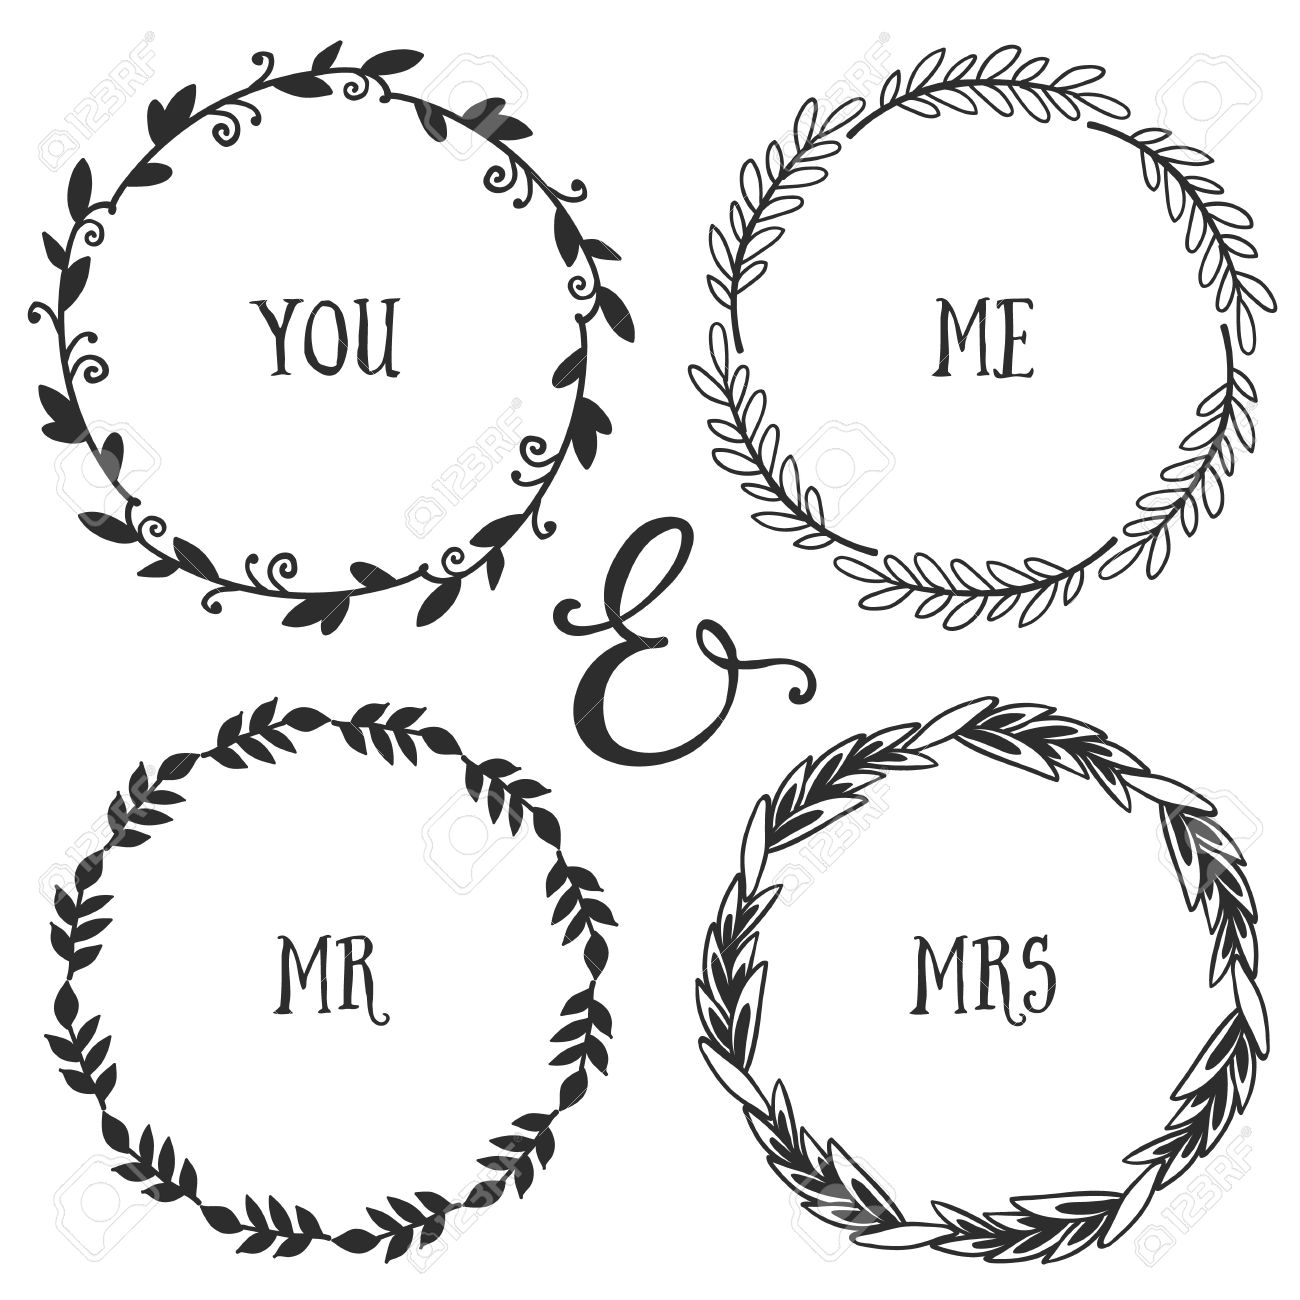 hand drawn rustic vintage wreaths with lettering floral vector graphic nature design elements